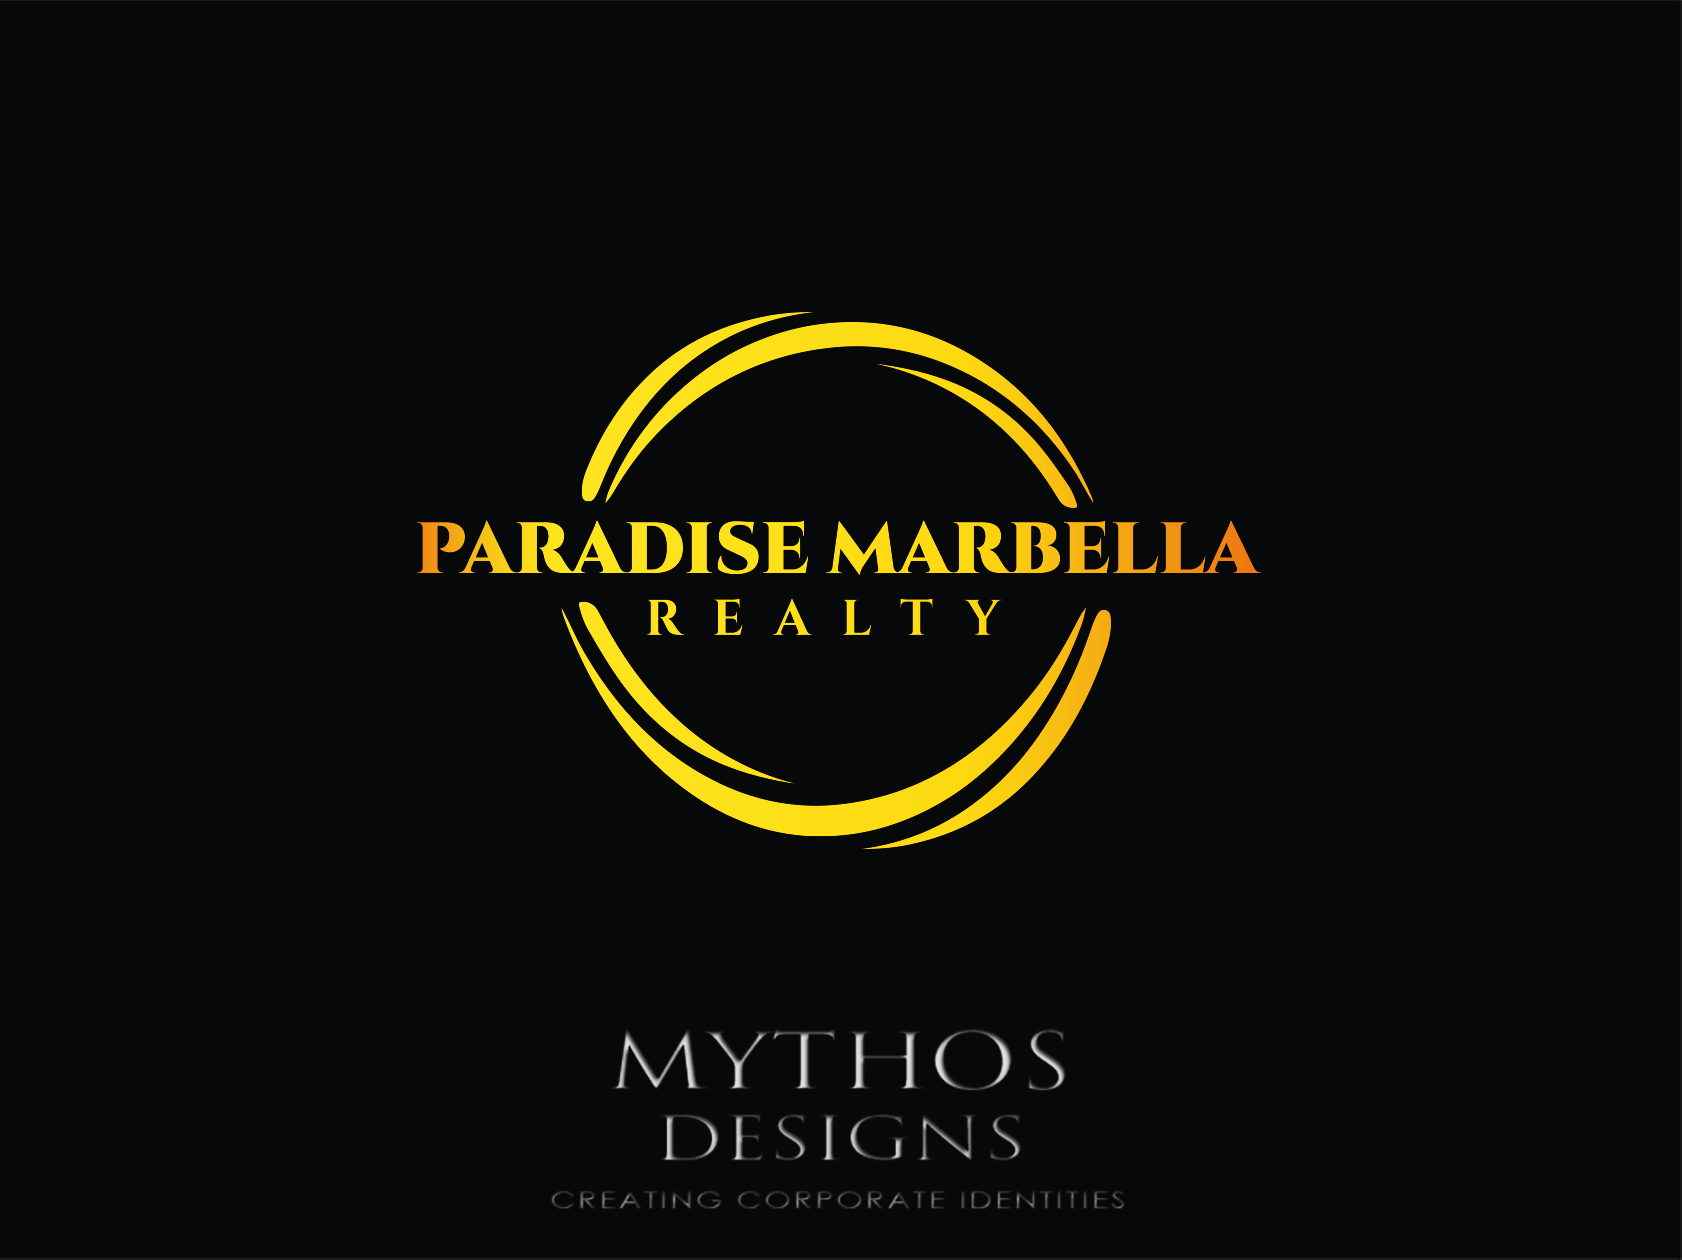 Logo Design by Mythos Designs - Entry No. 86 in the Logo Design Contest Captivating Logo Design for Paradise Marbella Realty.